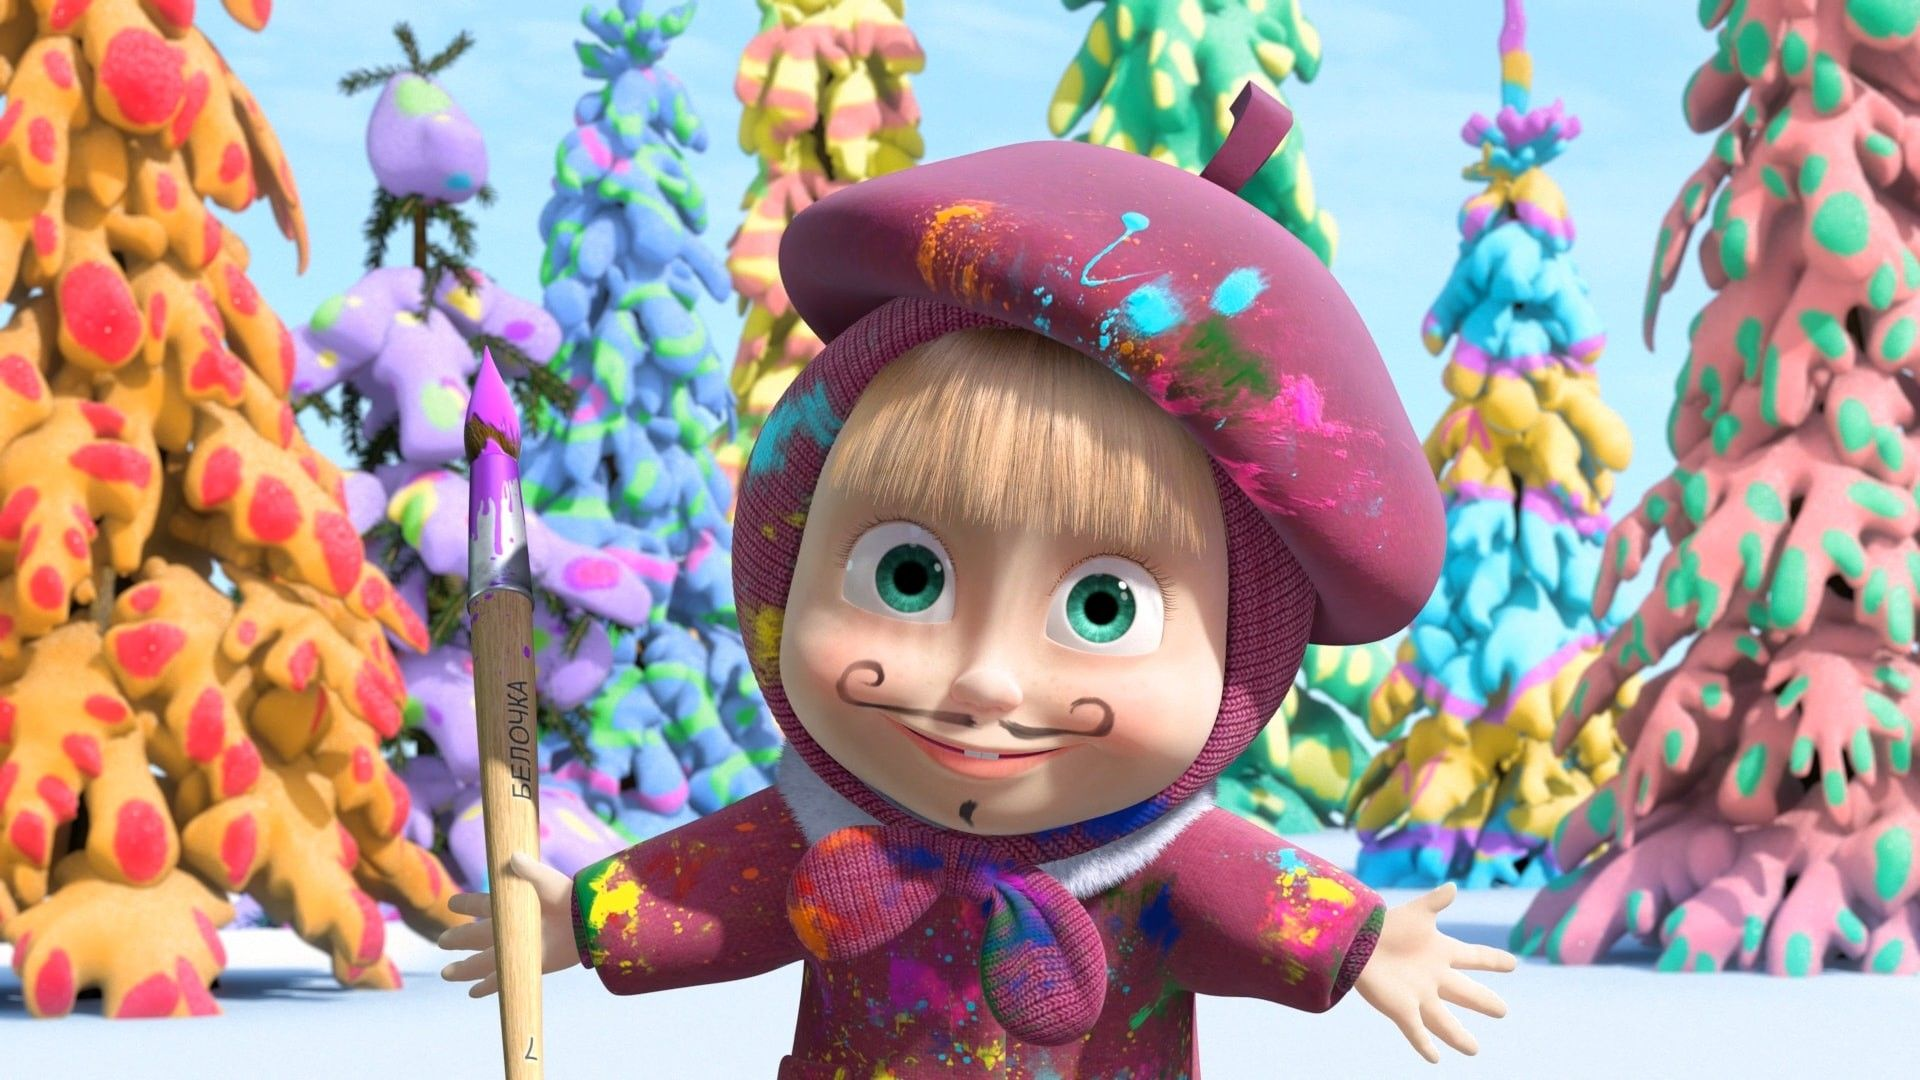 Masha And The Bear Wallpapers Top Free Masha And The Bear